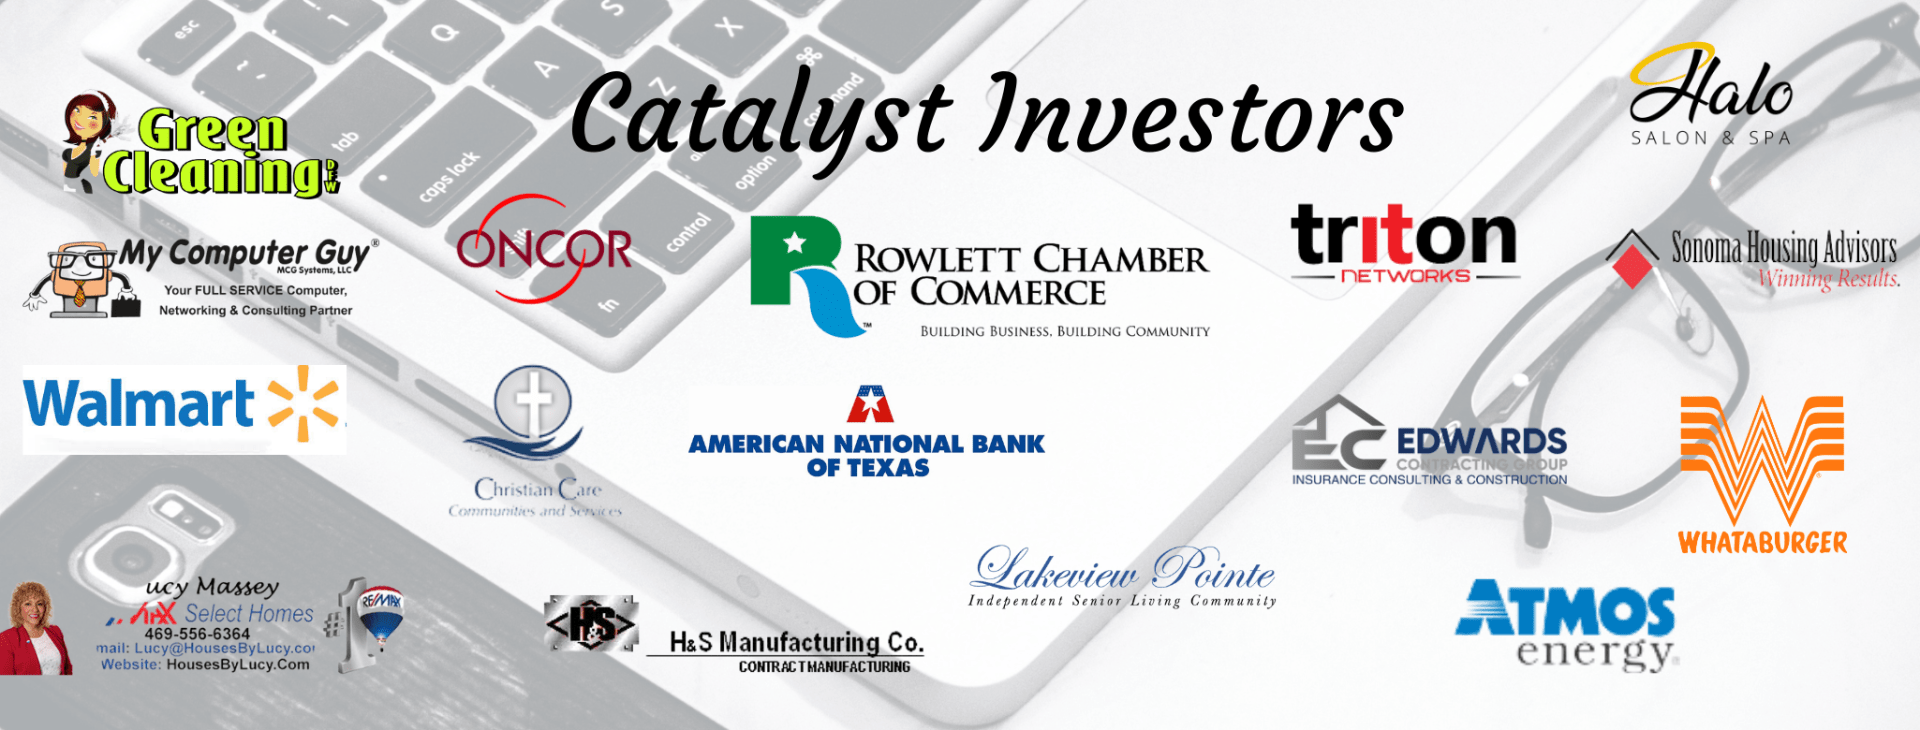 Copy-of-Catalyst-Investor-(1)-w1920.png